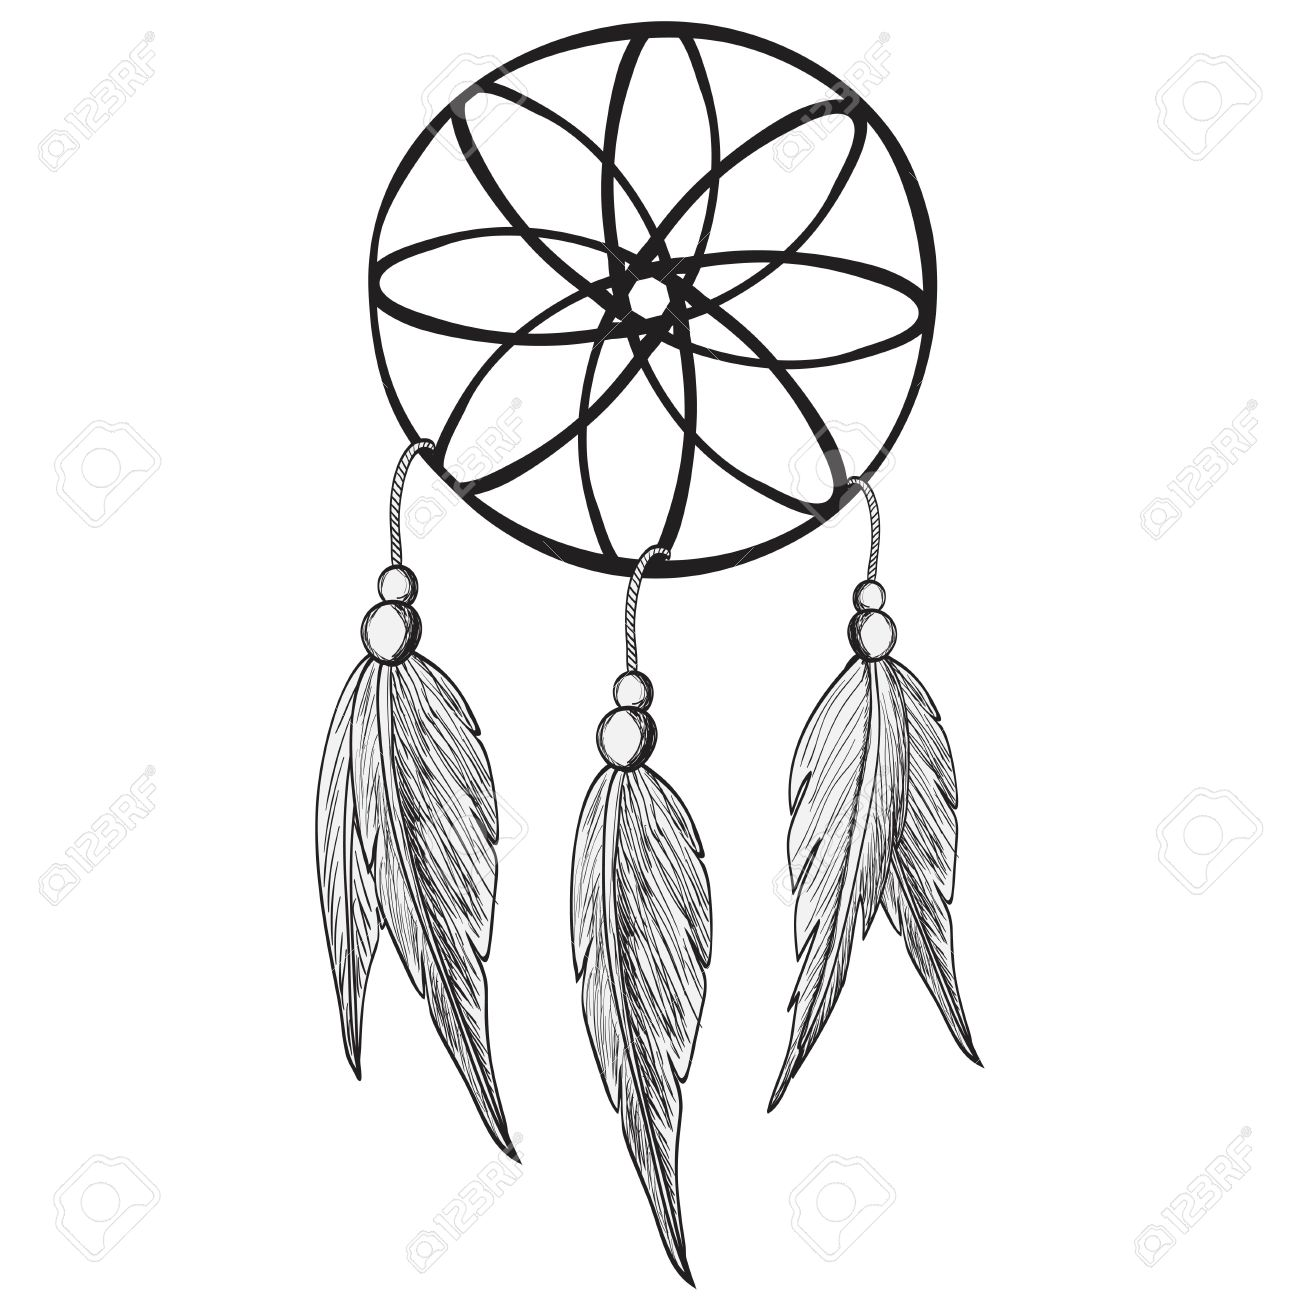 dreamcatcher vector illustration royalty free cliparts vectors rh 123rf com dream catcher vector art dream catcher vector